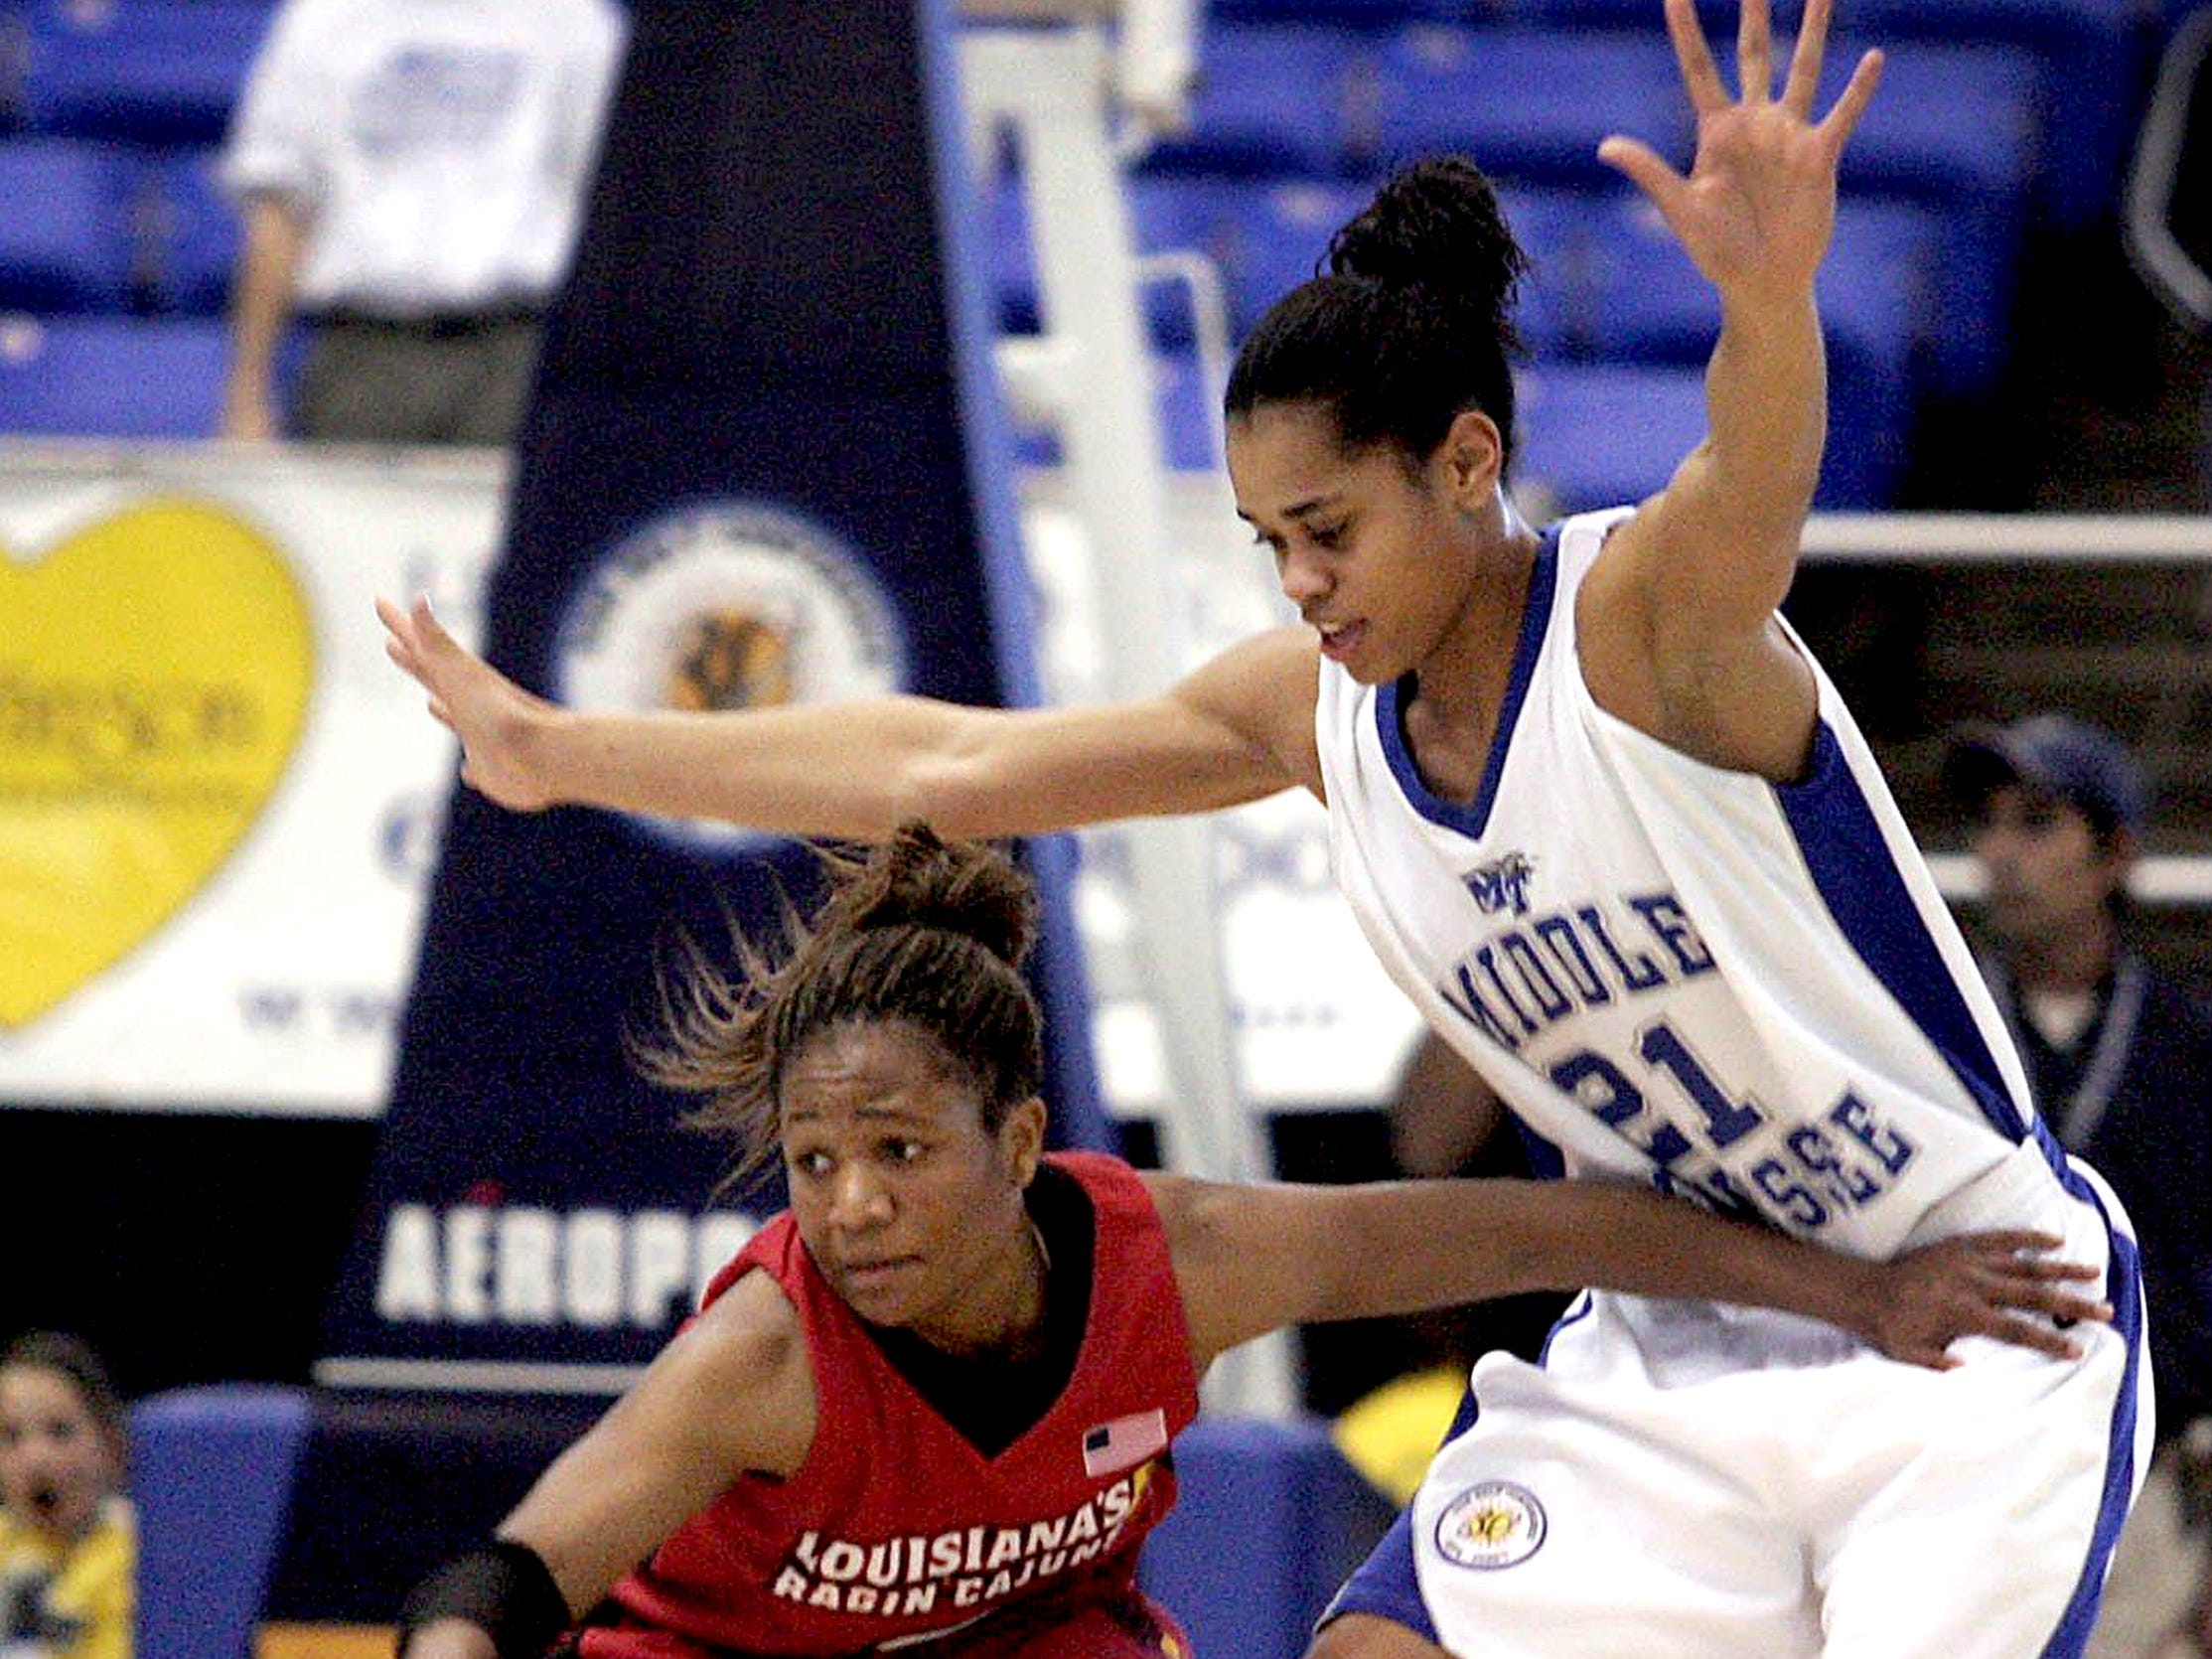 Louisianna-Lafayette's Ashley Blanche tries to fend off the defense of MTSU's Tia Stovall during the Lady Raiders' 84-58 win in the Quarterfinals of the 2006 Sun Belt Conference Tournament.